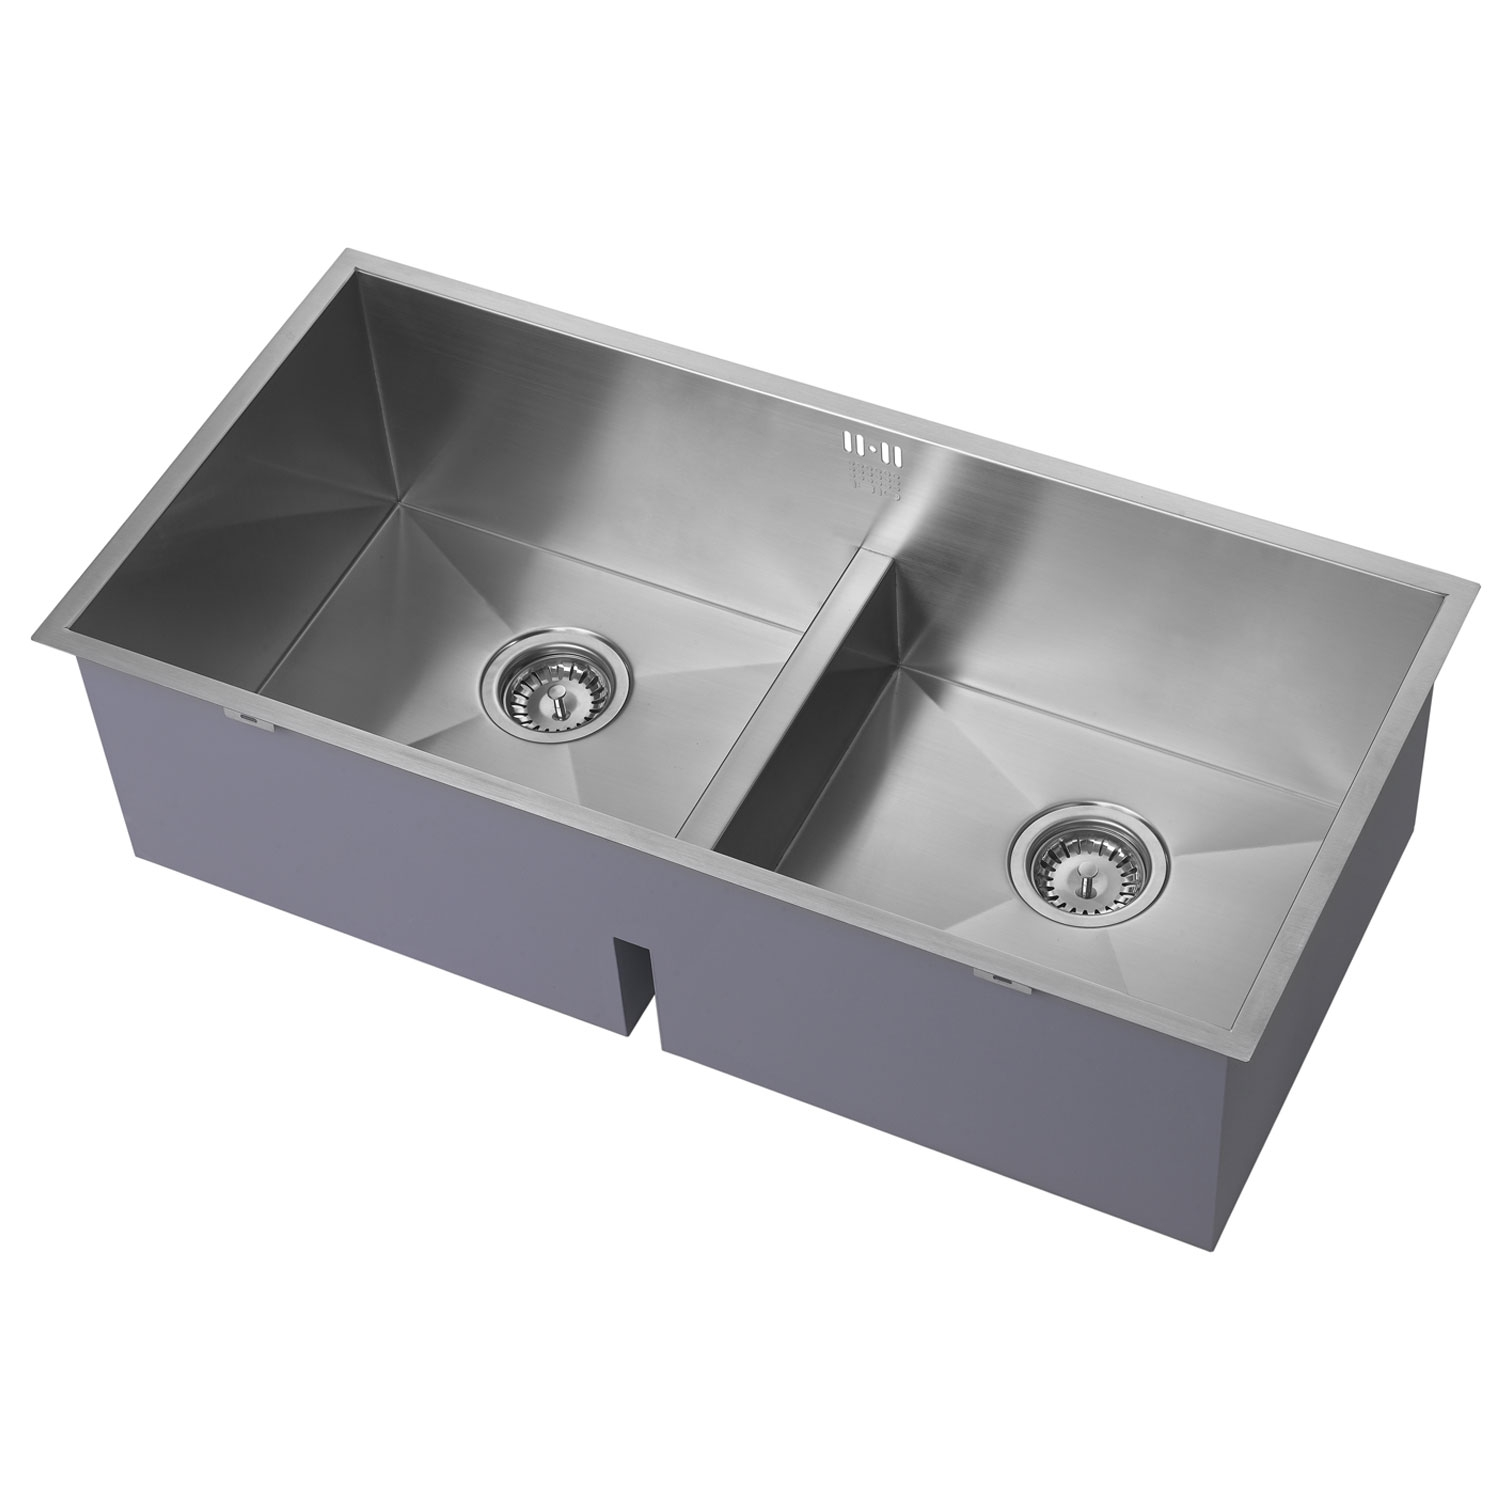 The 1810 Company Zenduo 415/415U Deep 2.0 Bowl Kitchen Sink - Stainless Steel-0